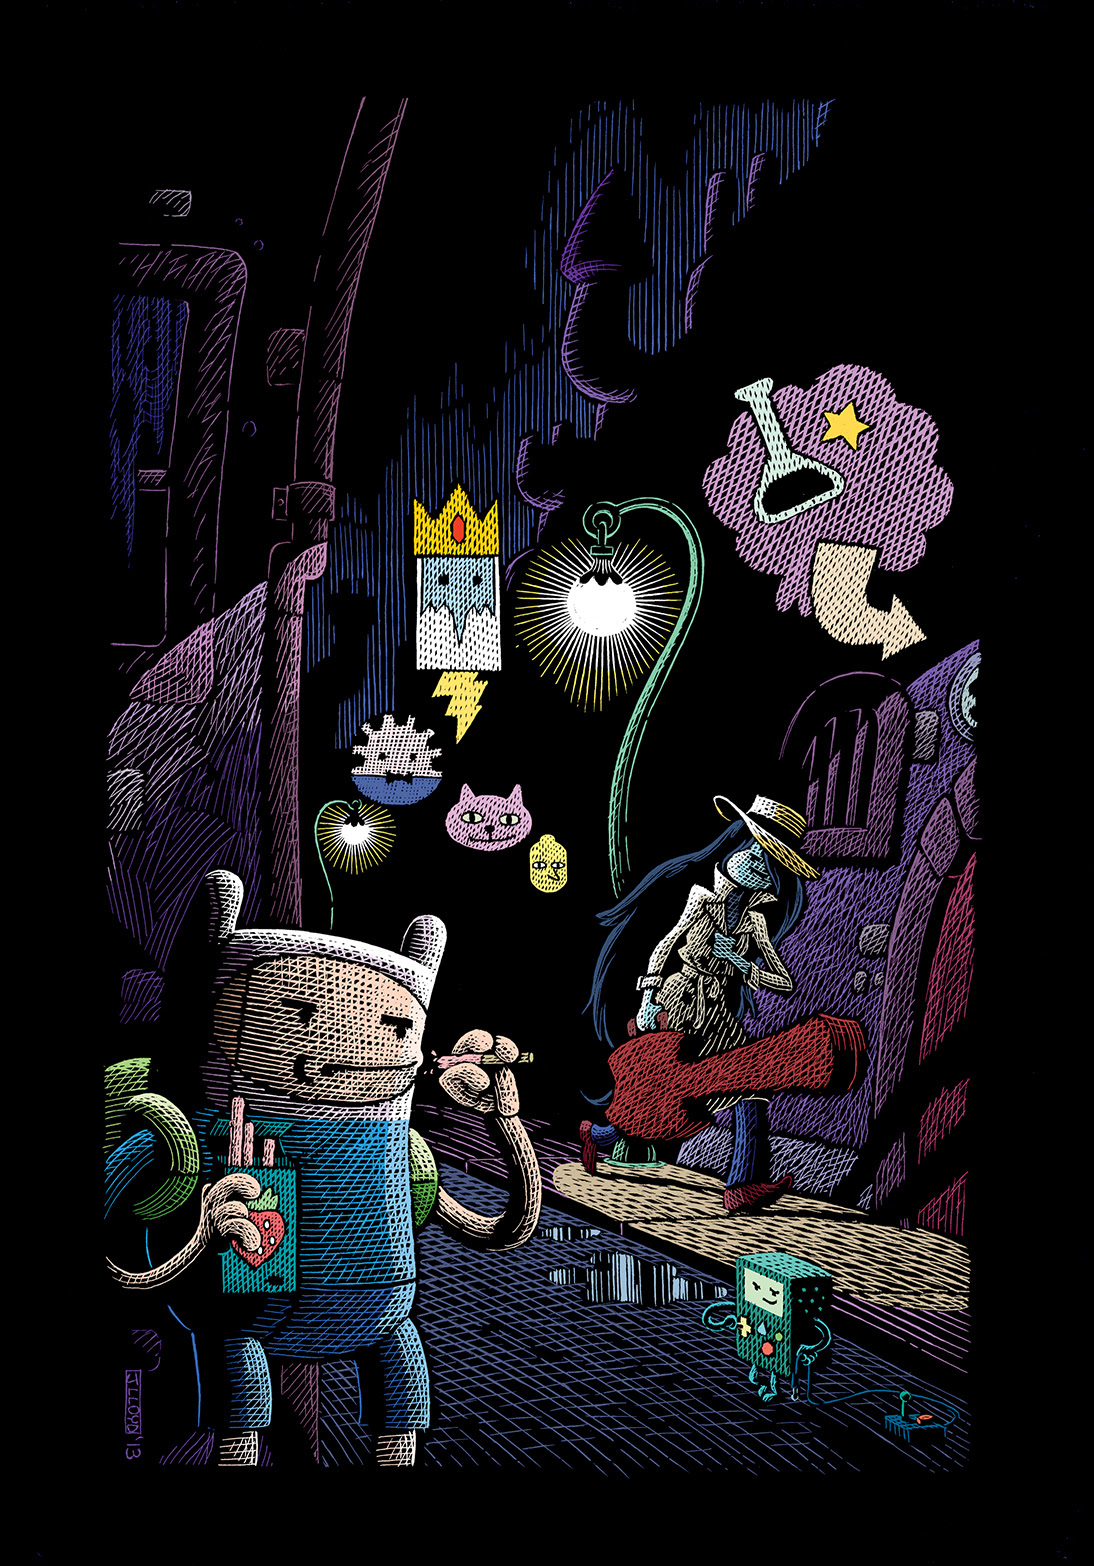 ADVENTURE TIME #28 Cover C by James Lloyd